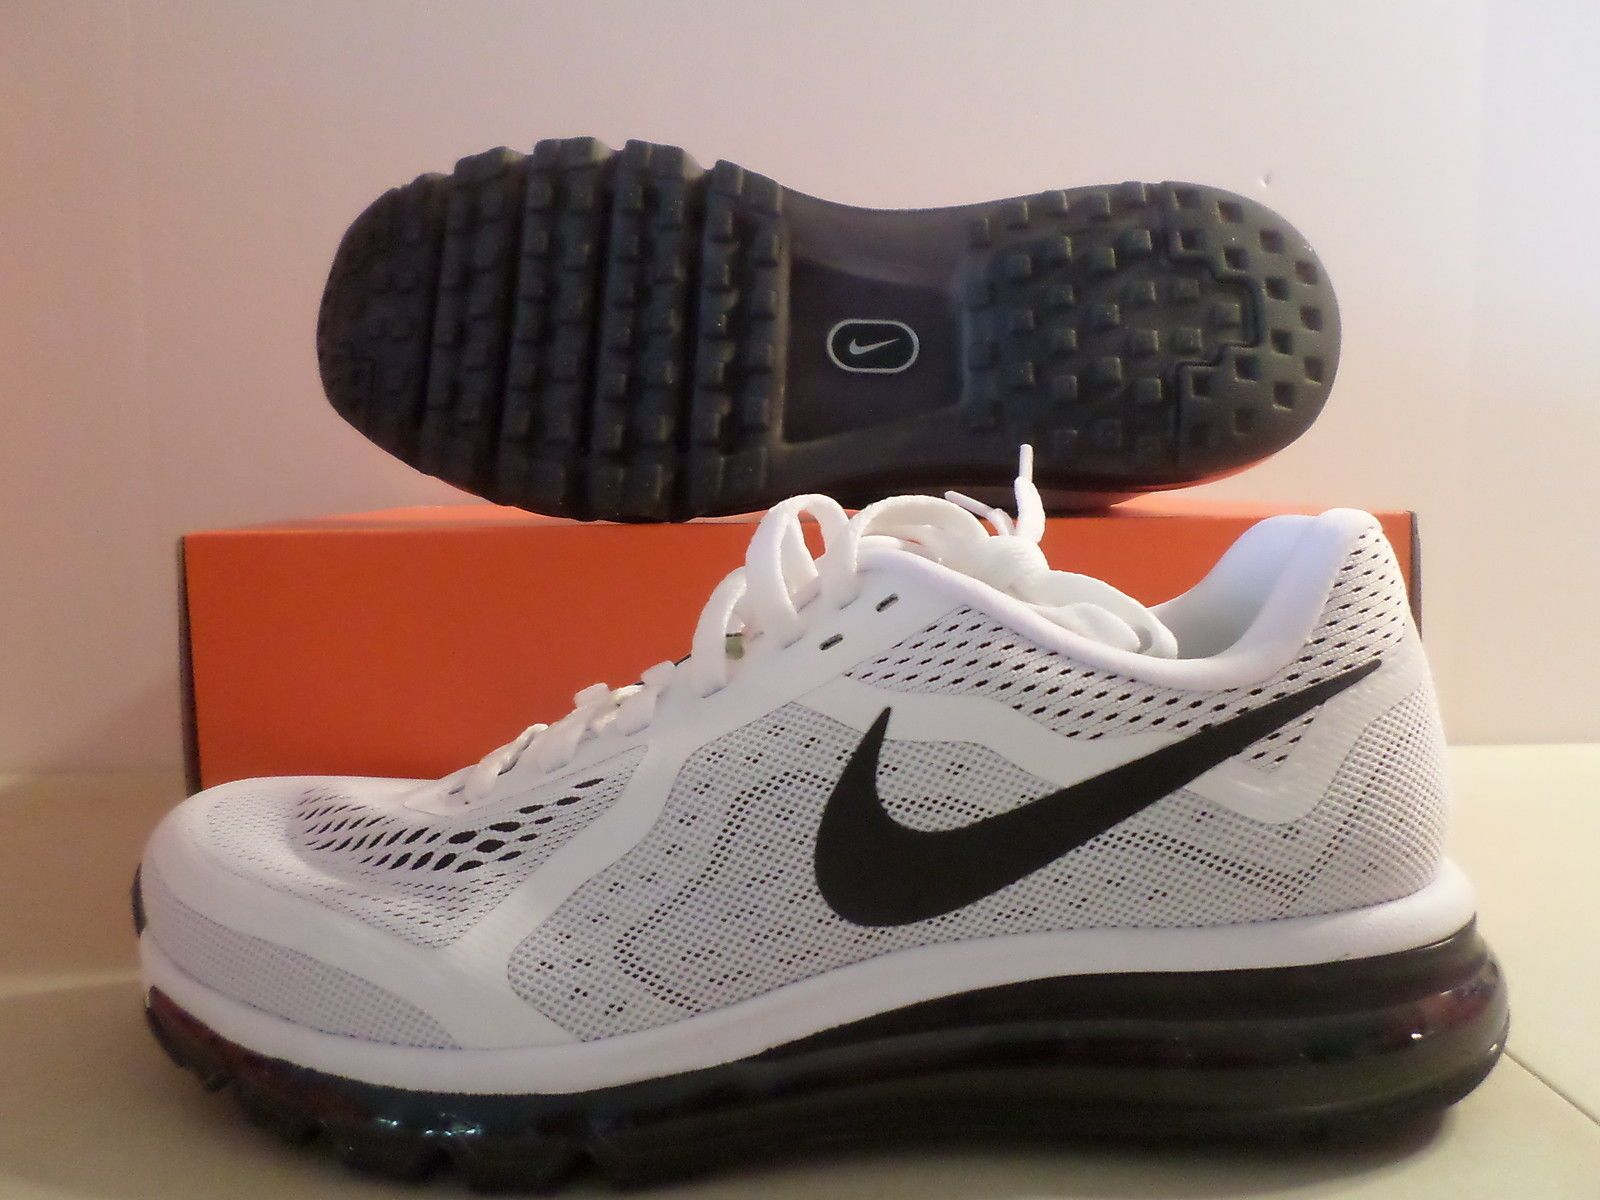 premium selection f1742 32a37 ... uk new nike air max 2014 360 white black running shoes sz 11 ebay 68408  aca45